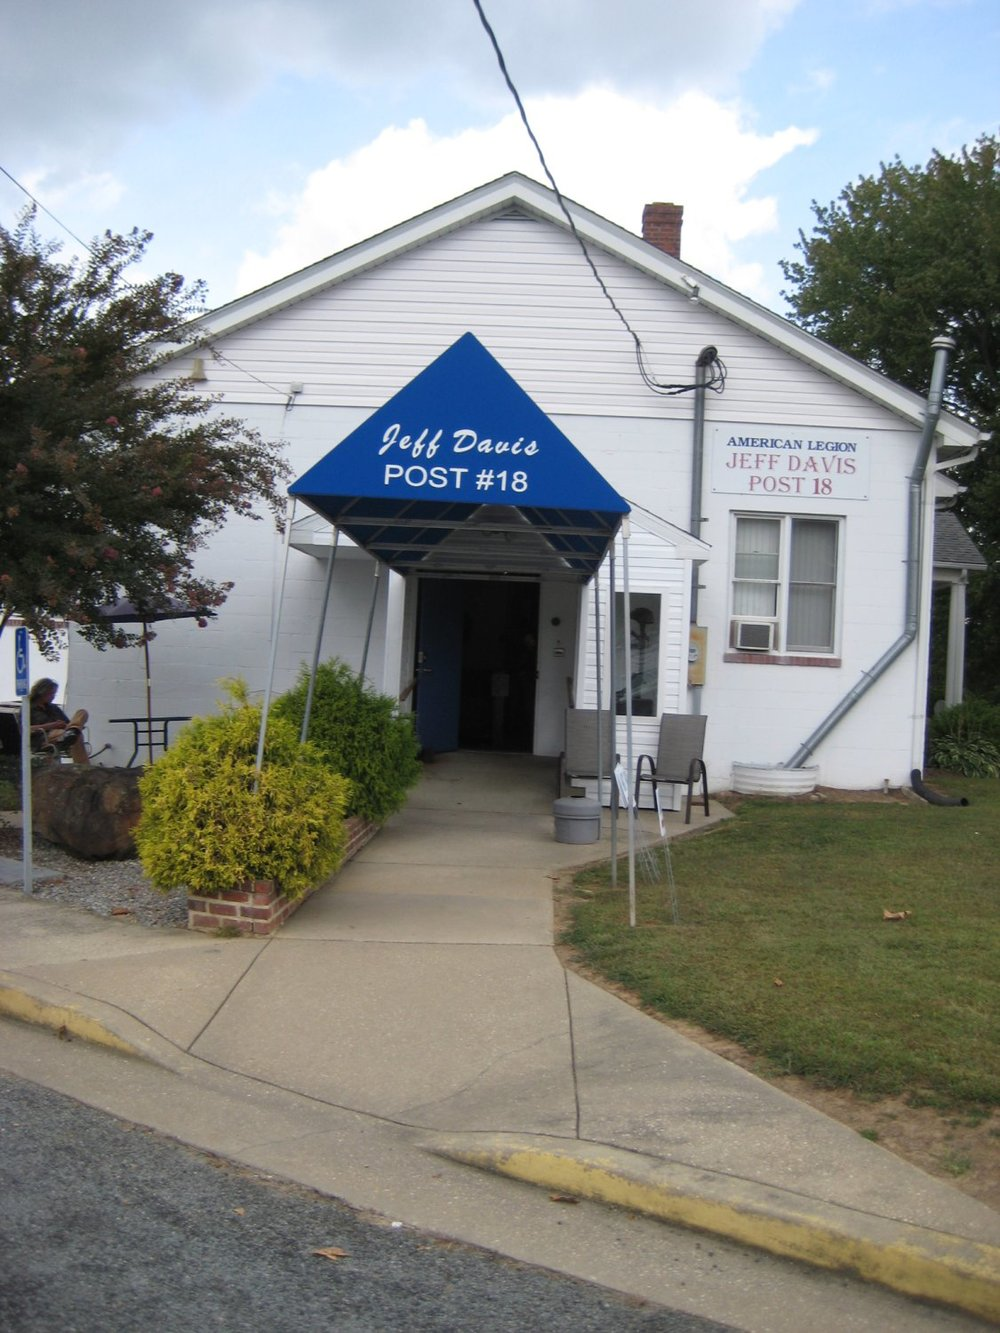 The 4th Annual Artisan's Fair was held at American Legion Jeff Davis Post 18 in Centreville on September 21, 2013.